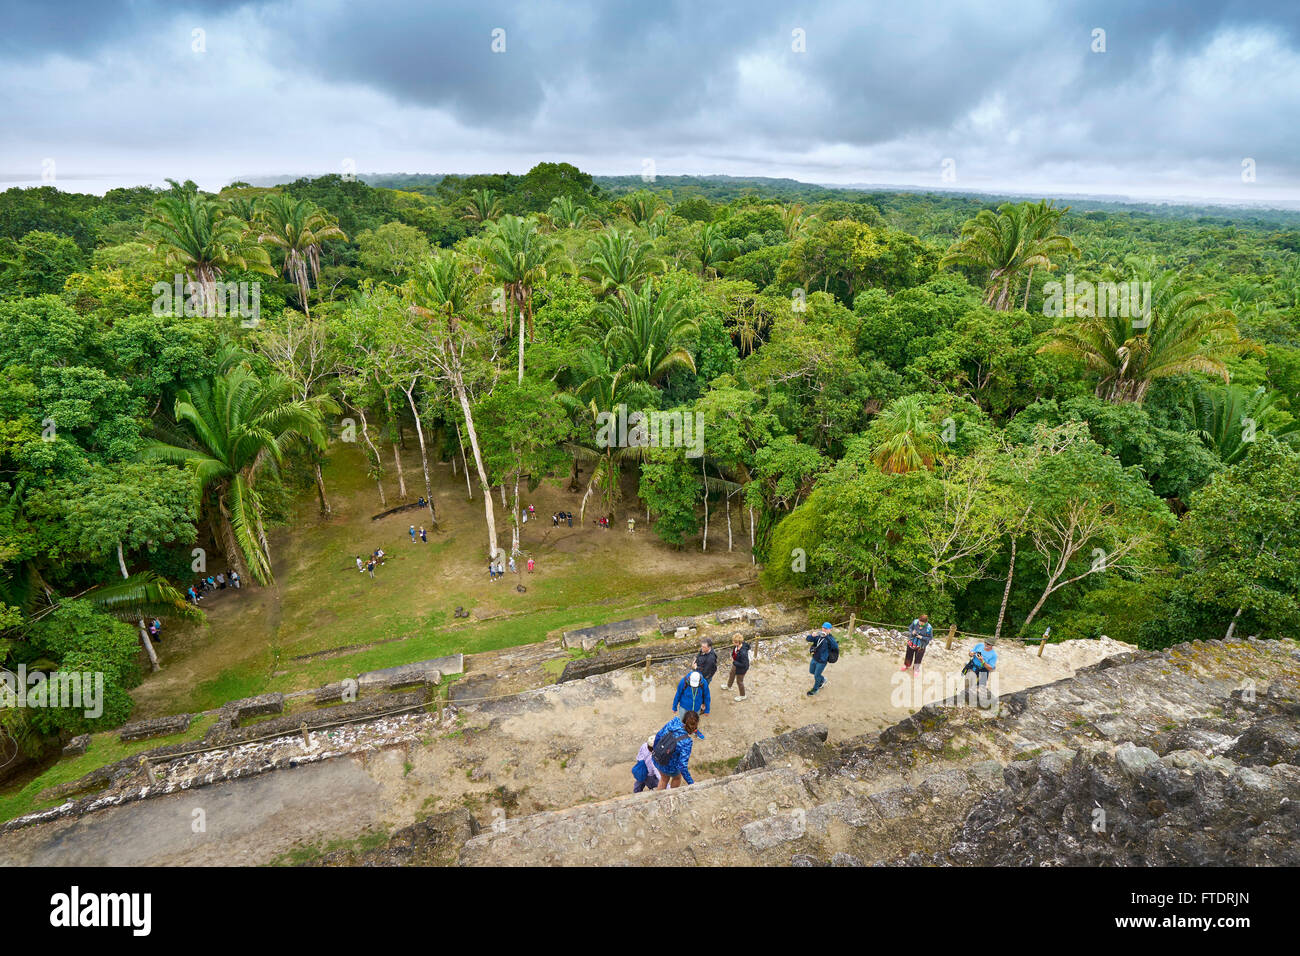 Tourists admiring view of Yucatan from the top of High Temple, Ancient  Maya Ruins, Lamanai, Belize - Stock Image